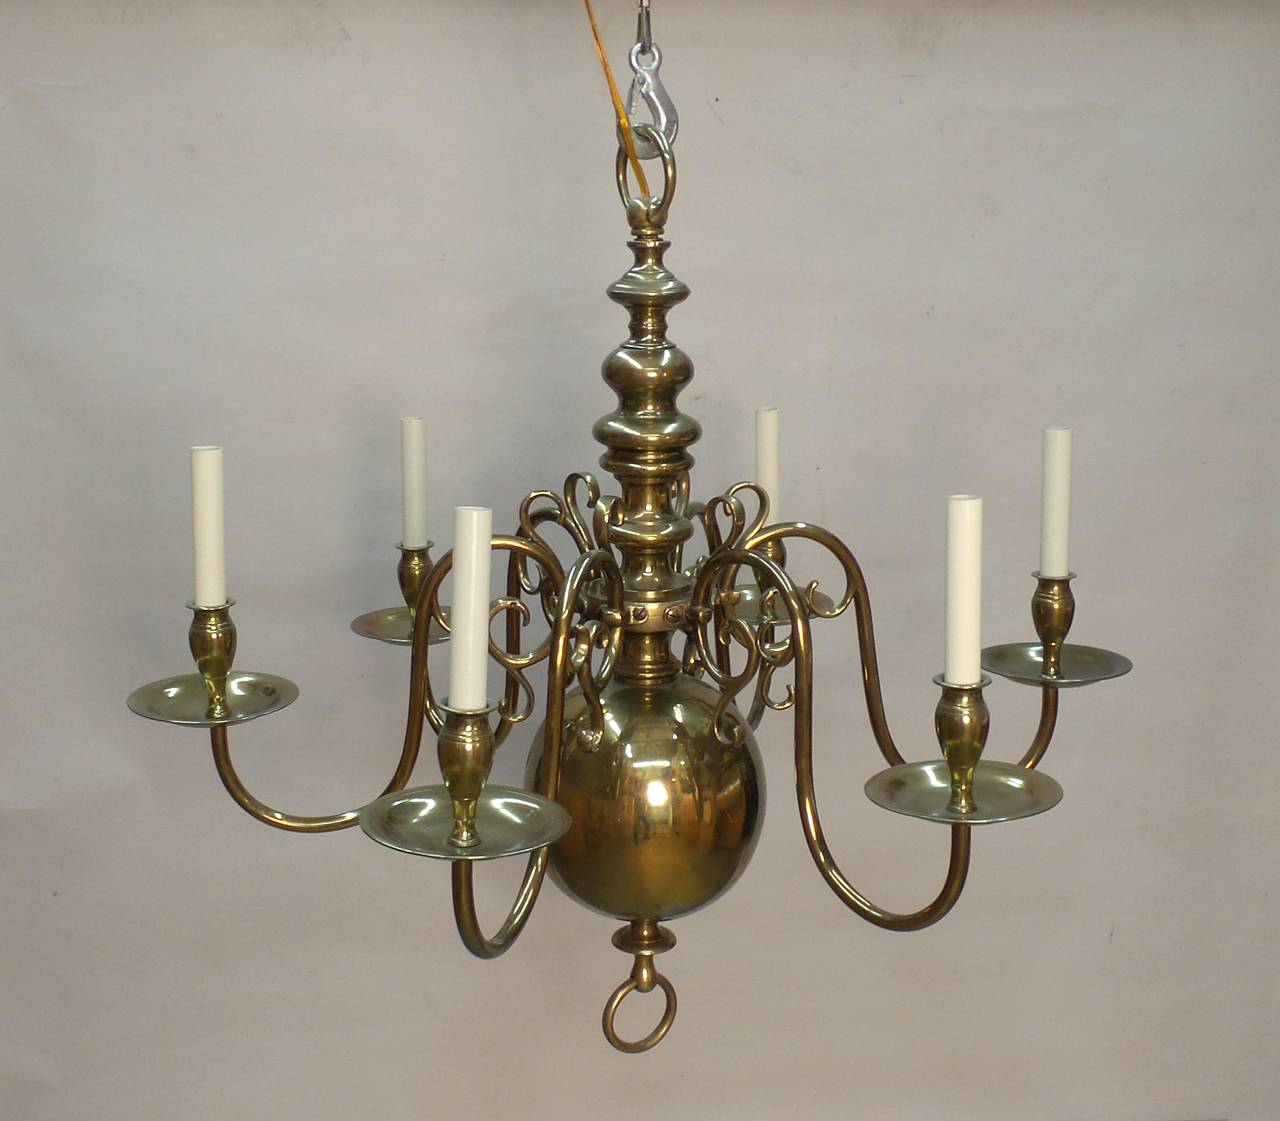 Rewiring a chandelier chandelier designs rewiring a chandelier best love the variety of diffe types arubaitofo Images